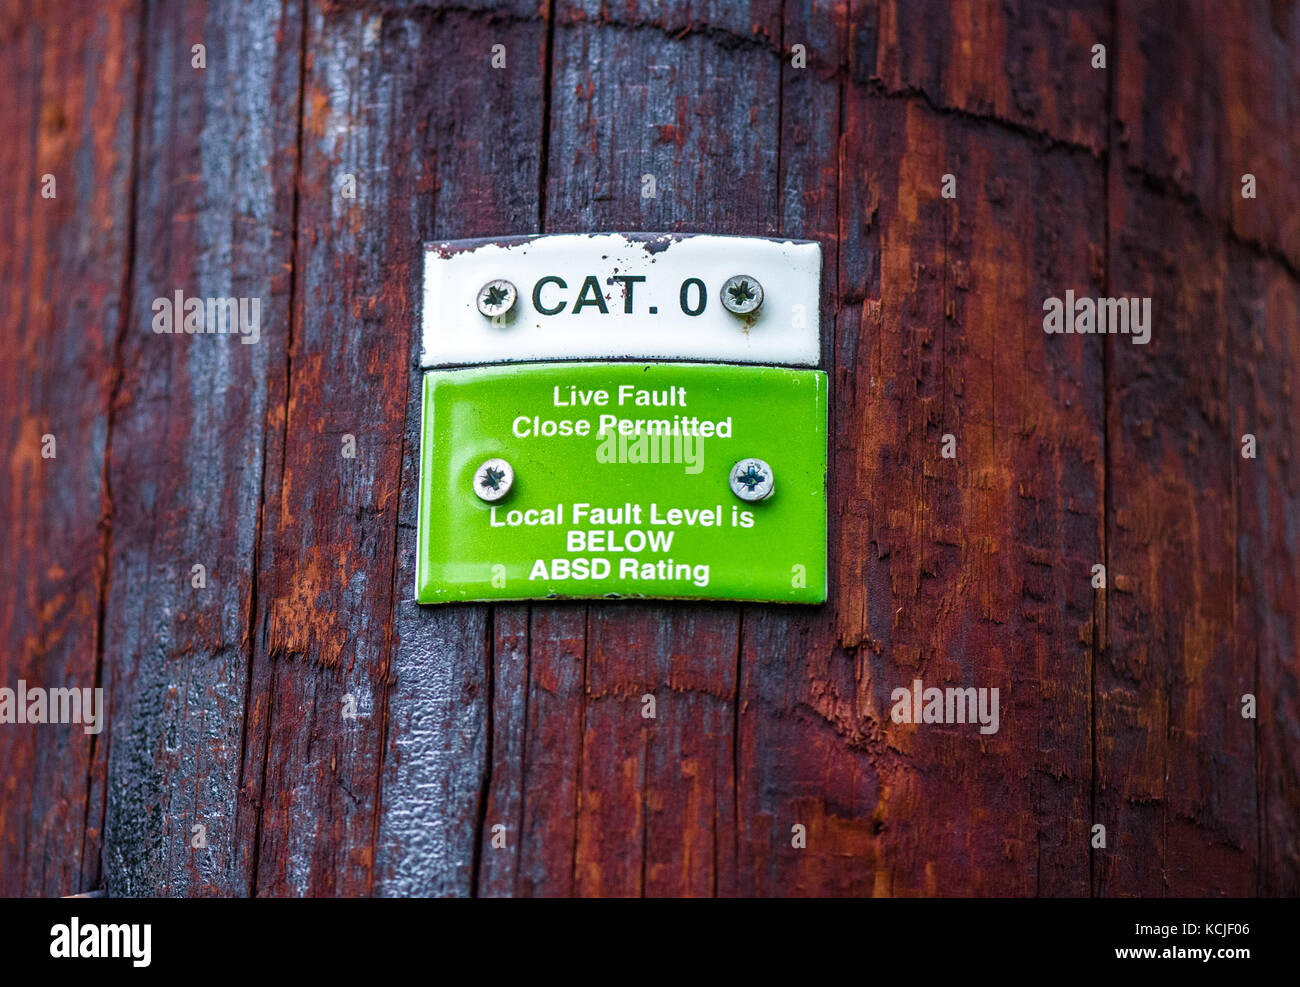 Category 0 and Live Fault label attached to a wooden 33KV over head electrical distribution pole. - Stock Image